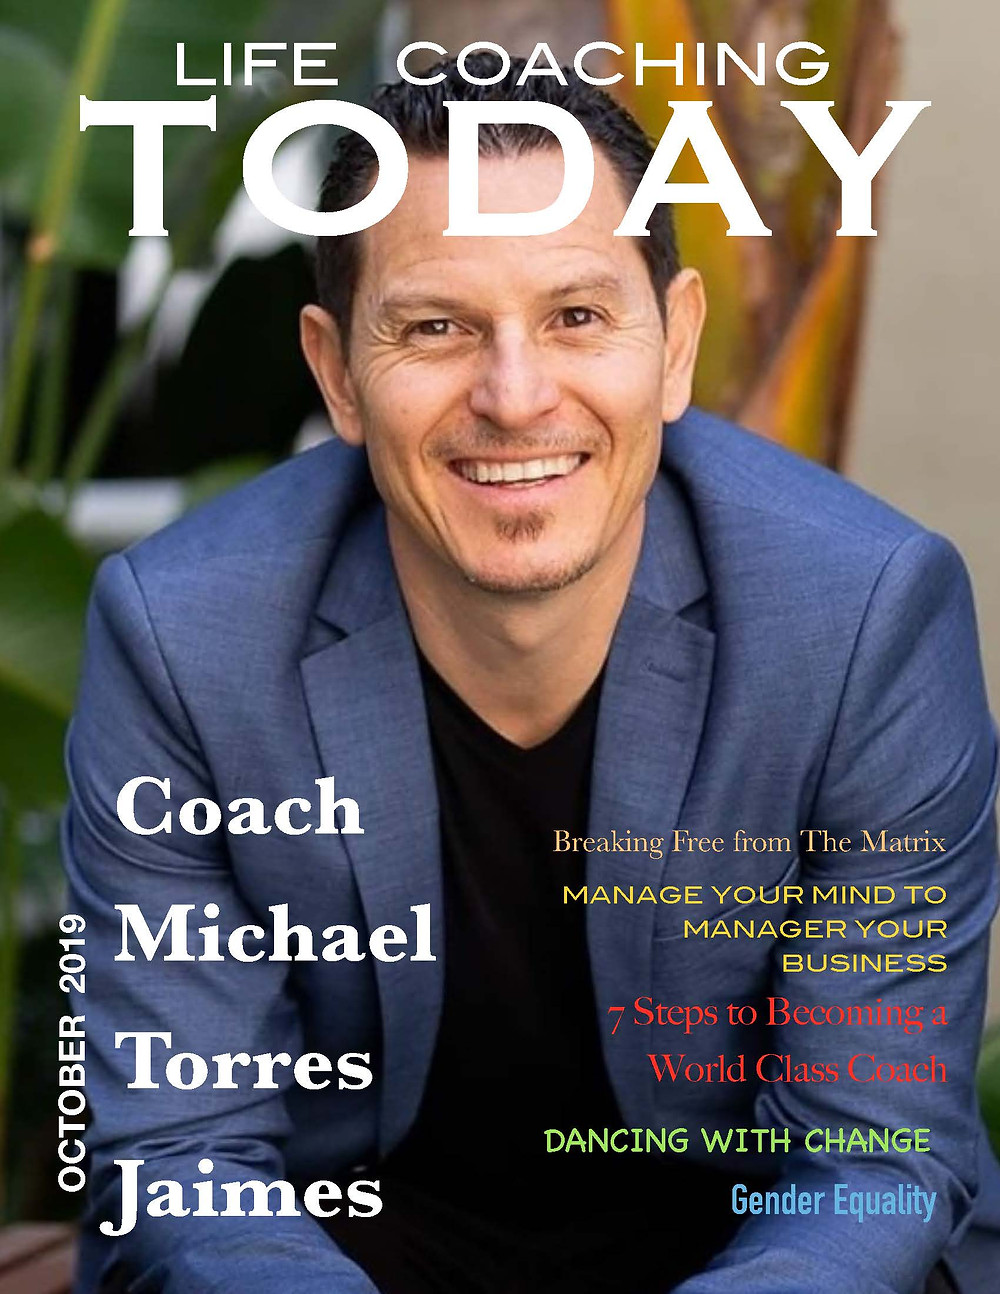 Life Coaching Today Cover, Magazine, Life Coach